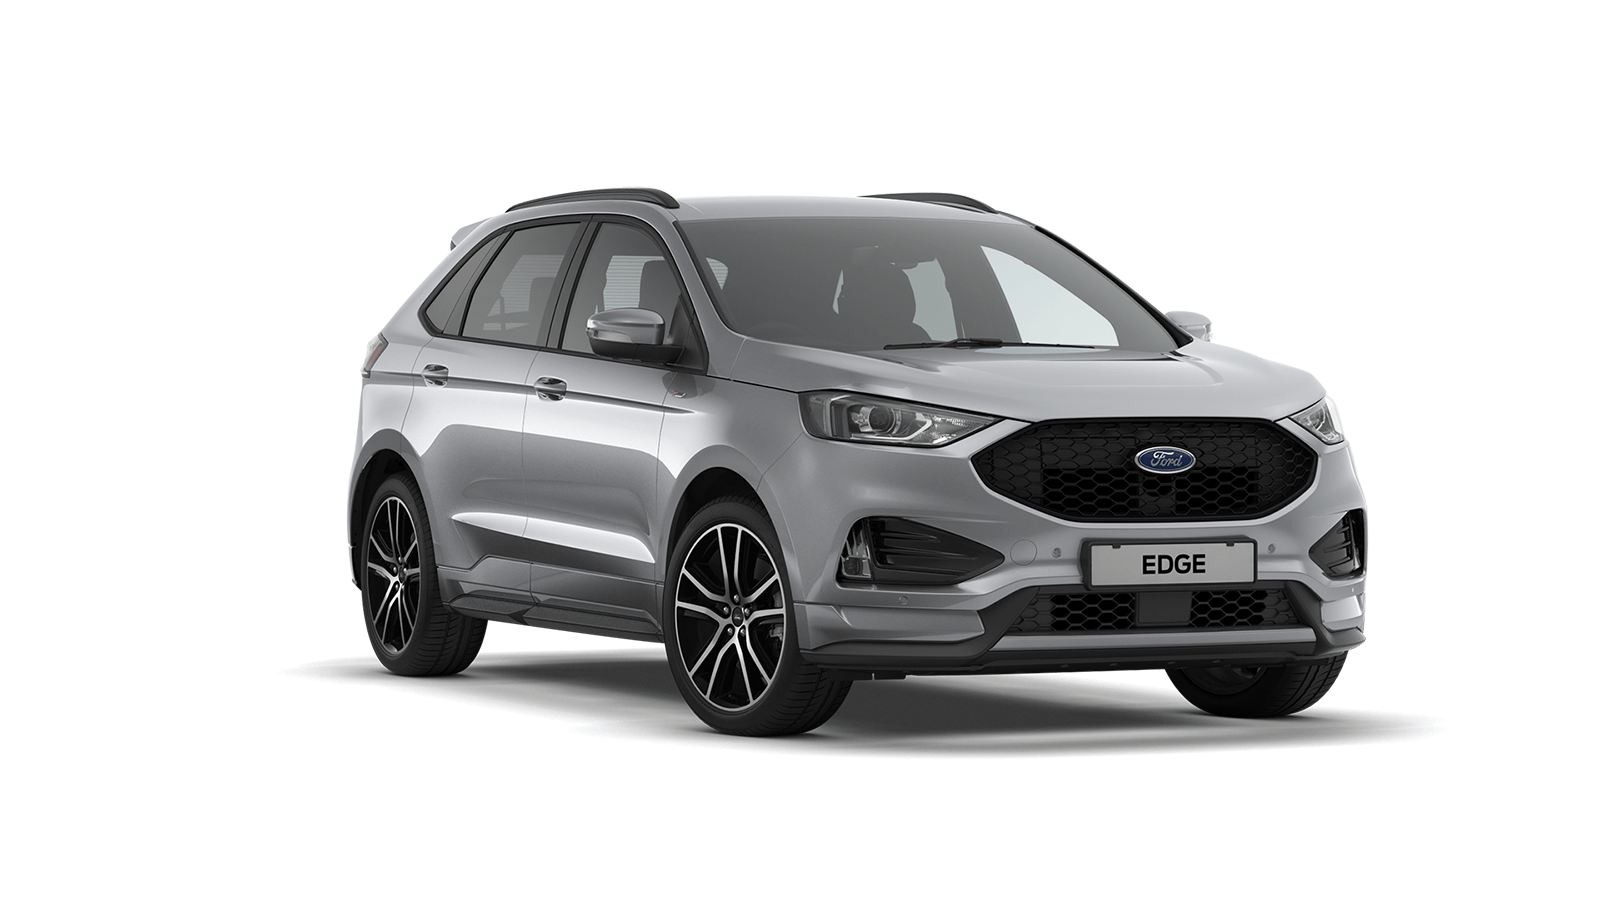 2019 NEW EDGE ST-Line